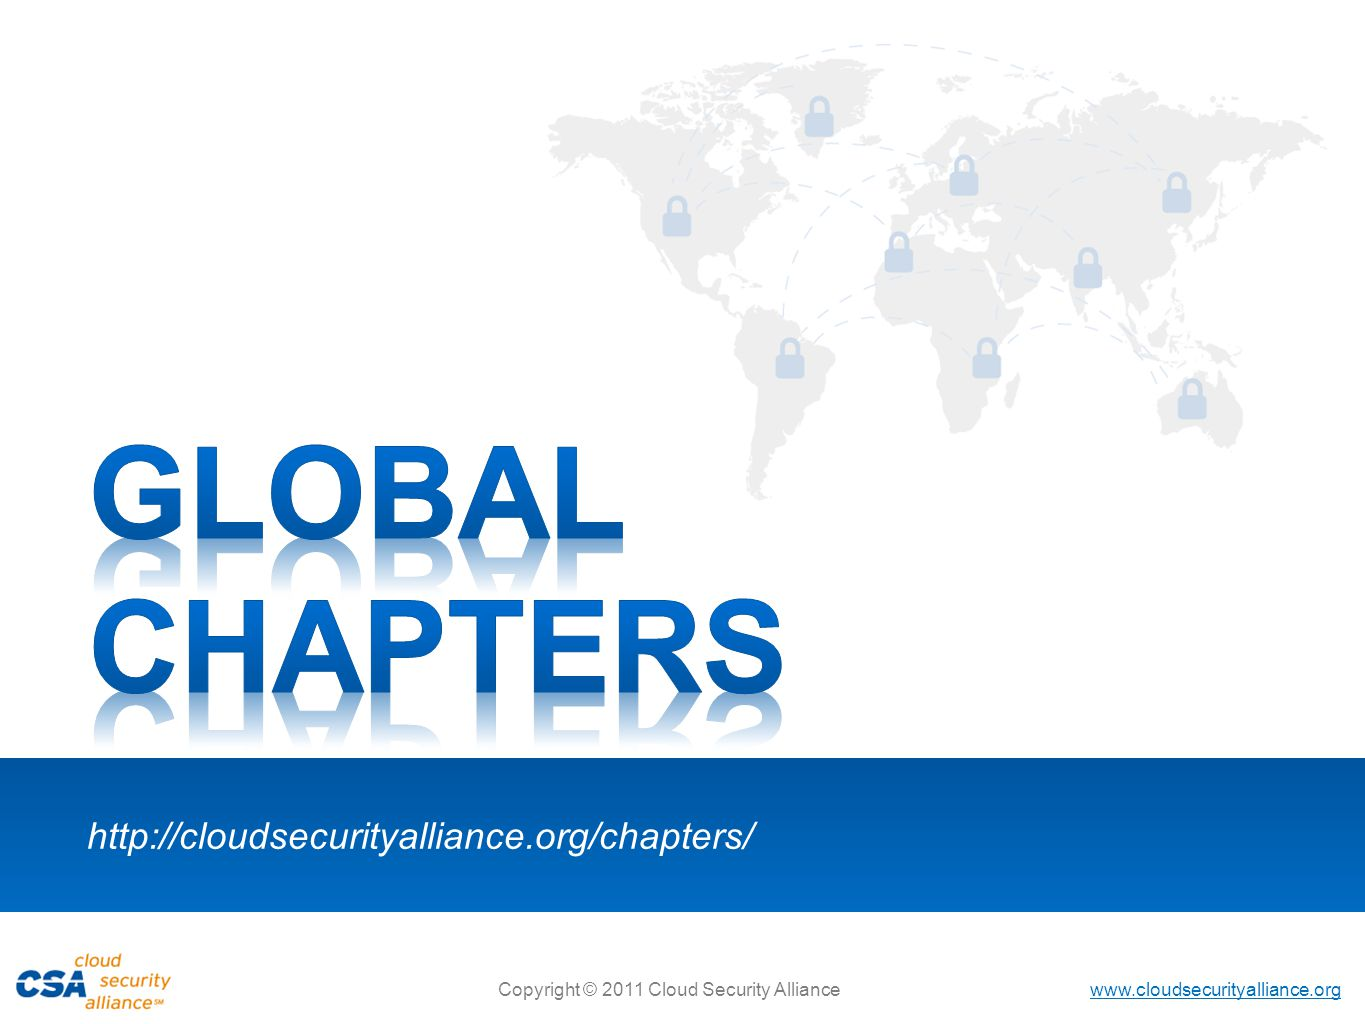 GLOBAL CHAPTERS http://cloudsecurityalliance.org/chapters/ 29